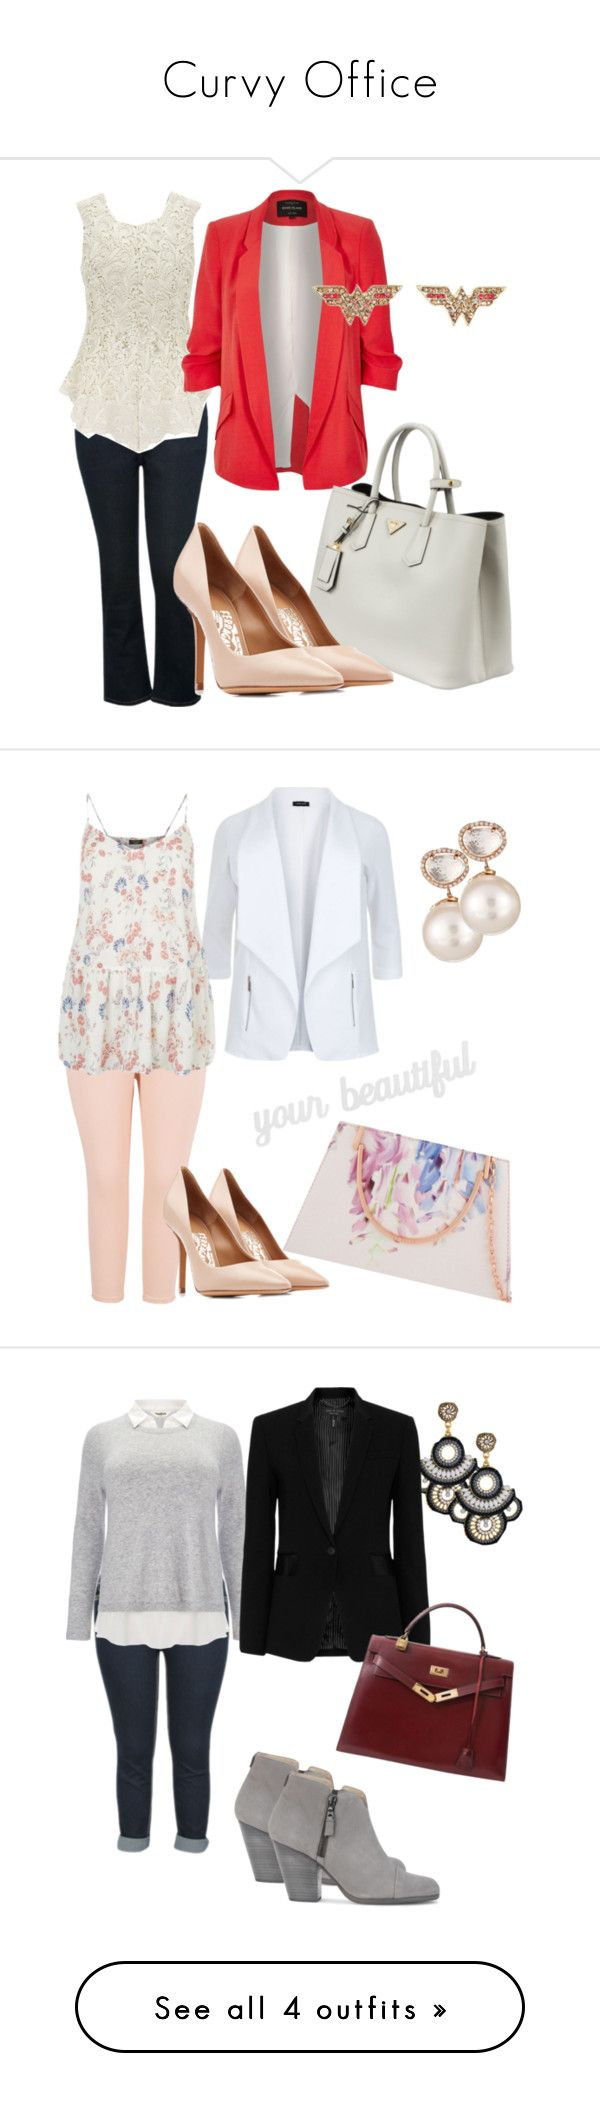 Curvy Office by lynetteamaro on Polyvore featuring polyvore fashion style M&Co River Island Prada Salvatore Ferragamo clothing contestentry ContestOnTheGo Melissa McCarthy Seven7 Samira 13 Ted Baker PBteen plus size clothing Studio 8 rag & bone Hermès City Chic LE3NO Lime Crime 3.1 Phillip Lim Kate Spade